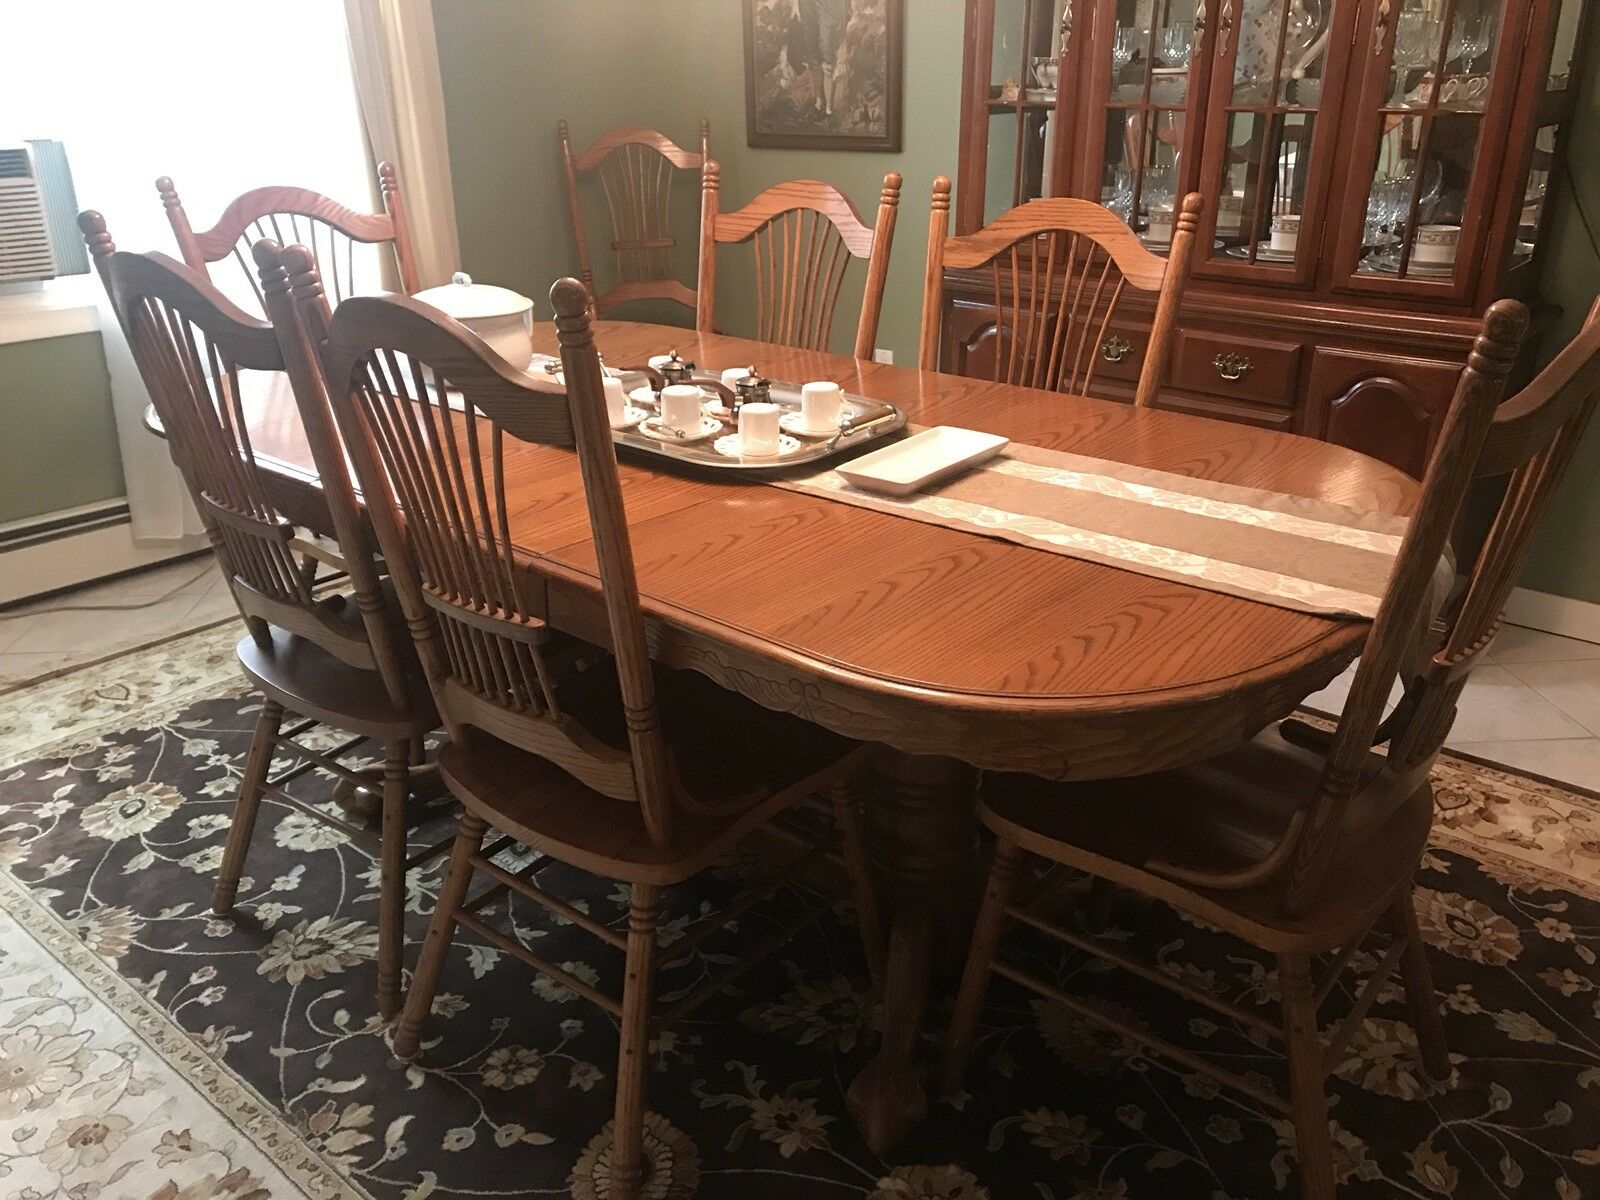 10 Piece Dining Room Set W Buffet China Hutch And 8 Chairs For Sale Online Ebay